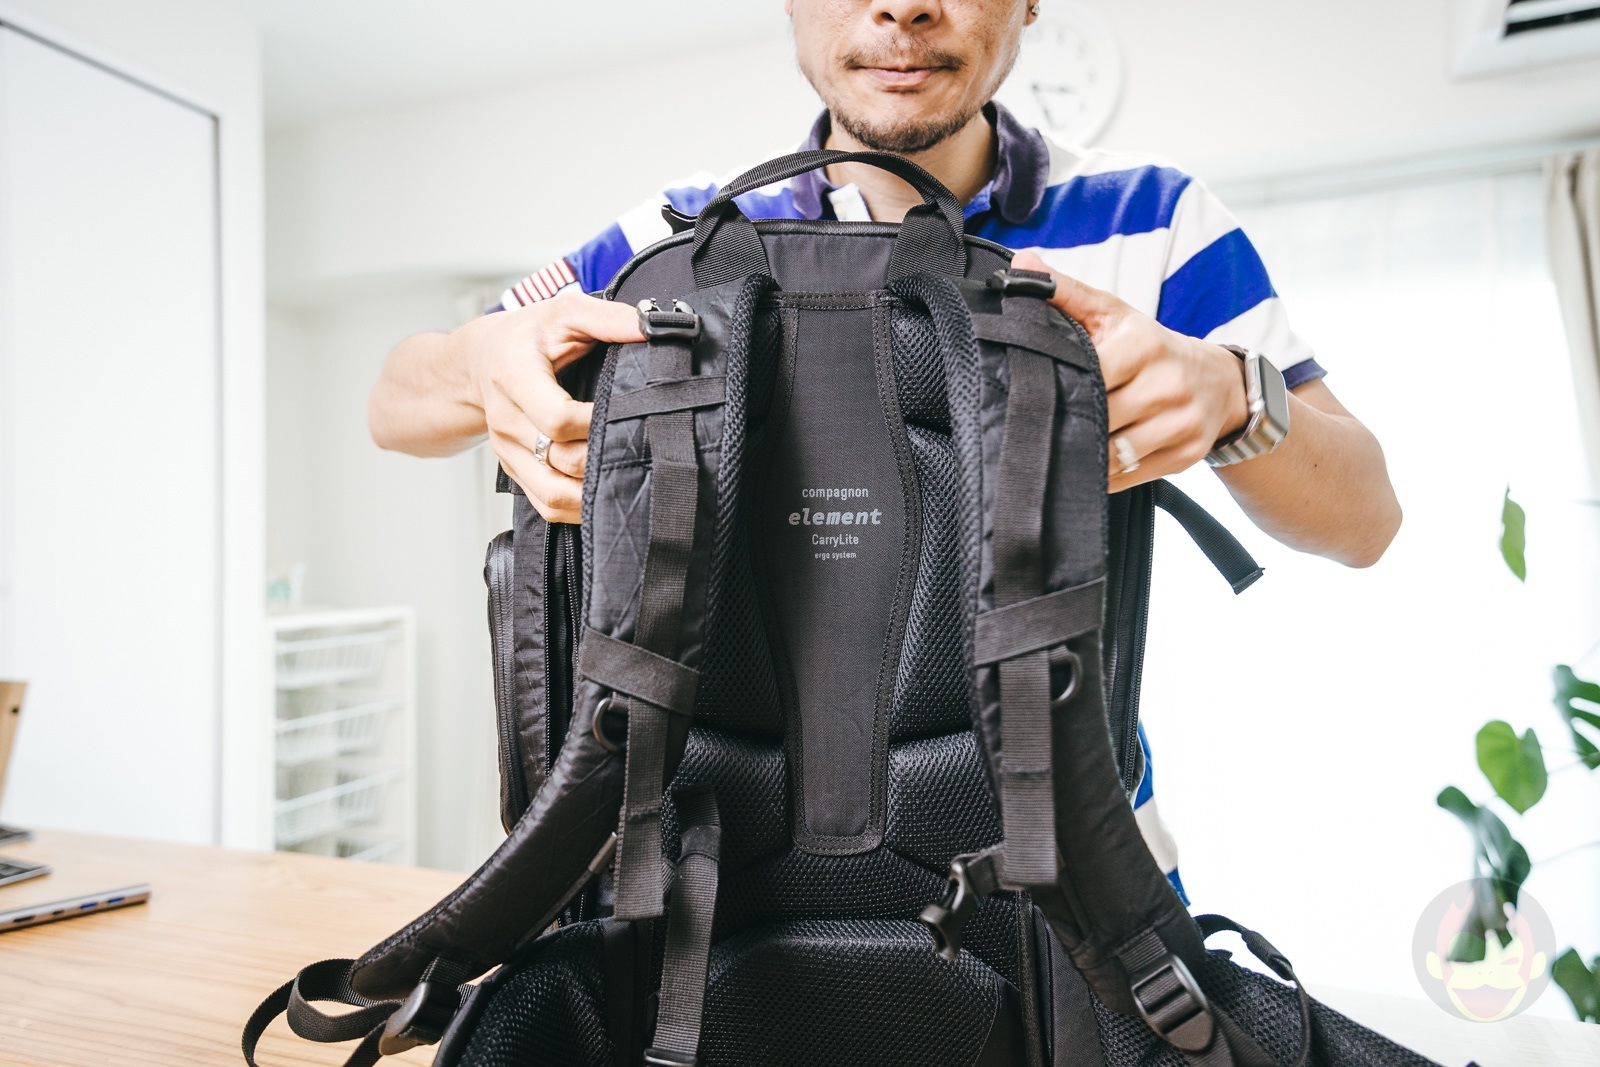 Compagnon element bacpack review 23